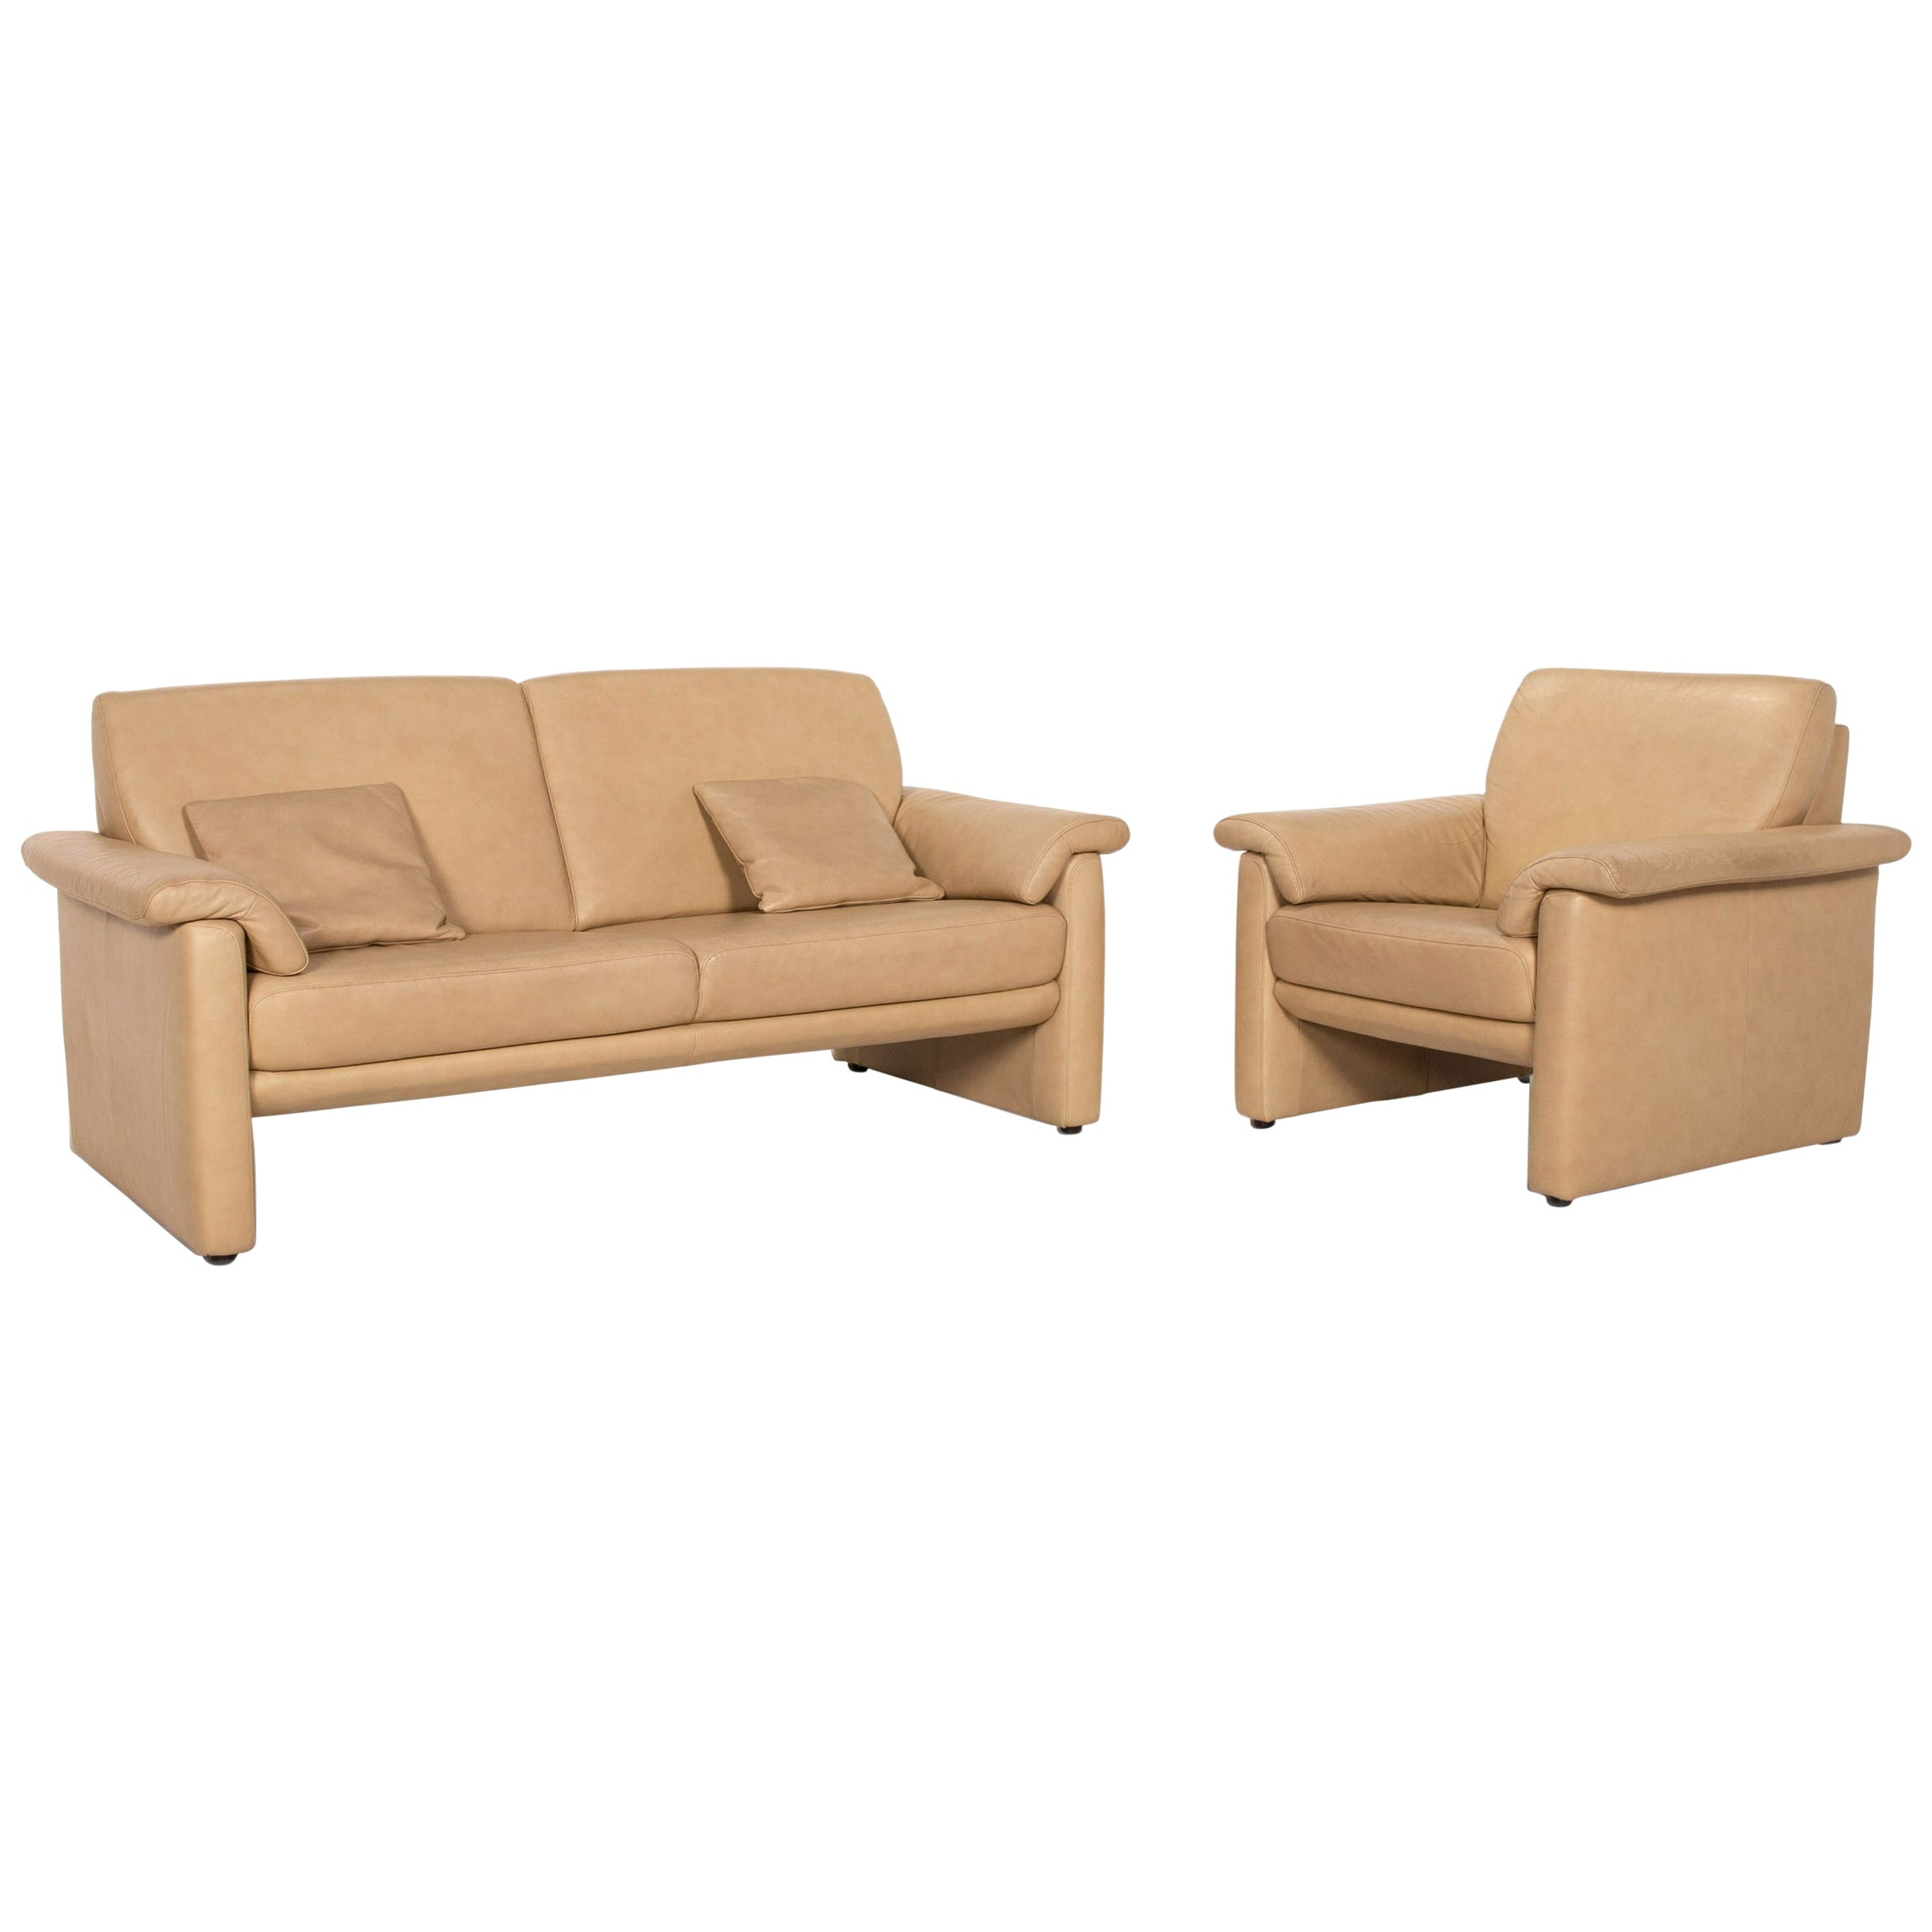 Willi Schillig Lucca Leather Sofa Set Beige 1 Two-Seat 1 Armchair